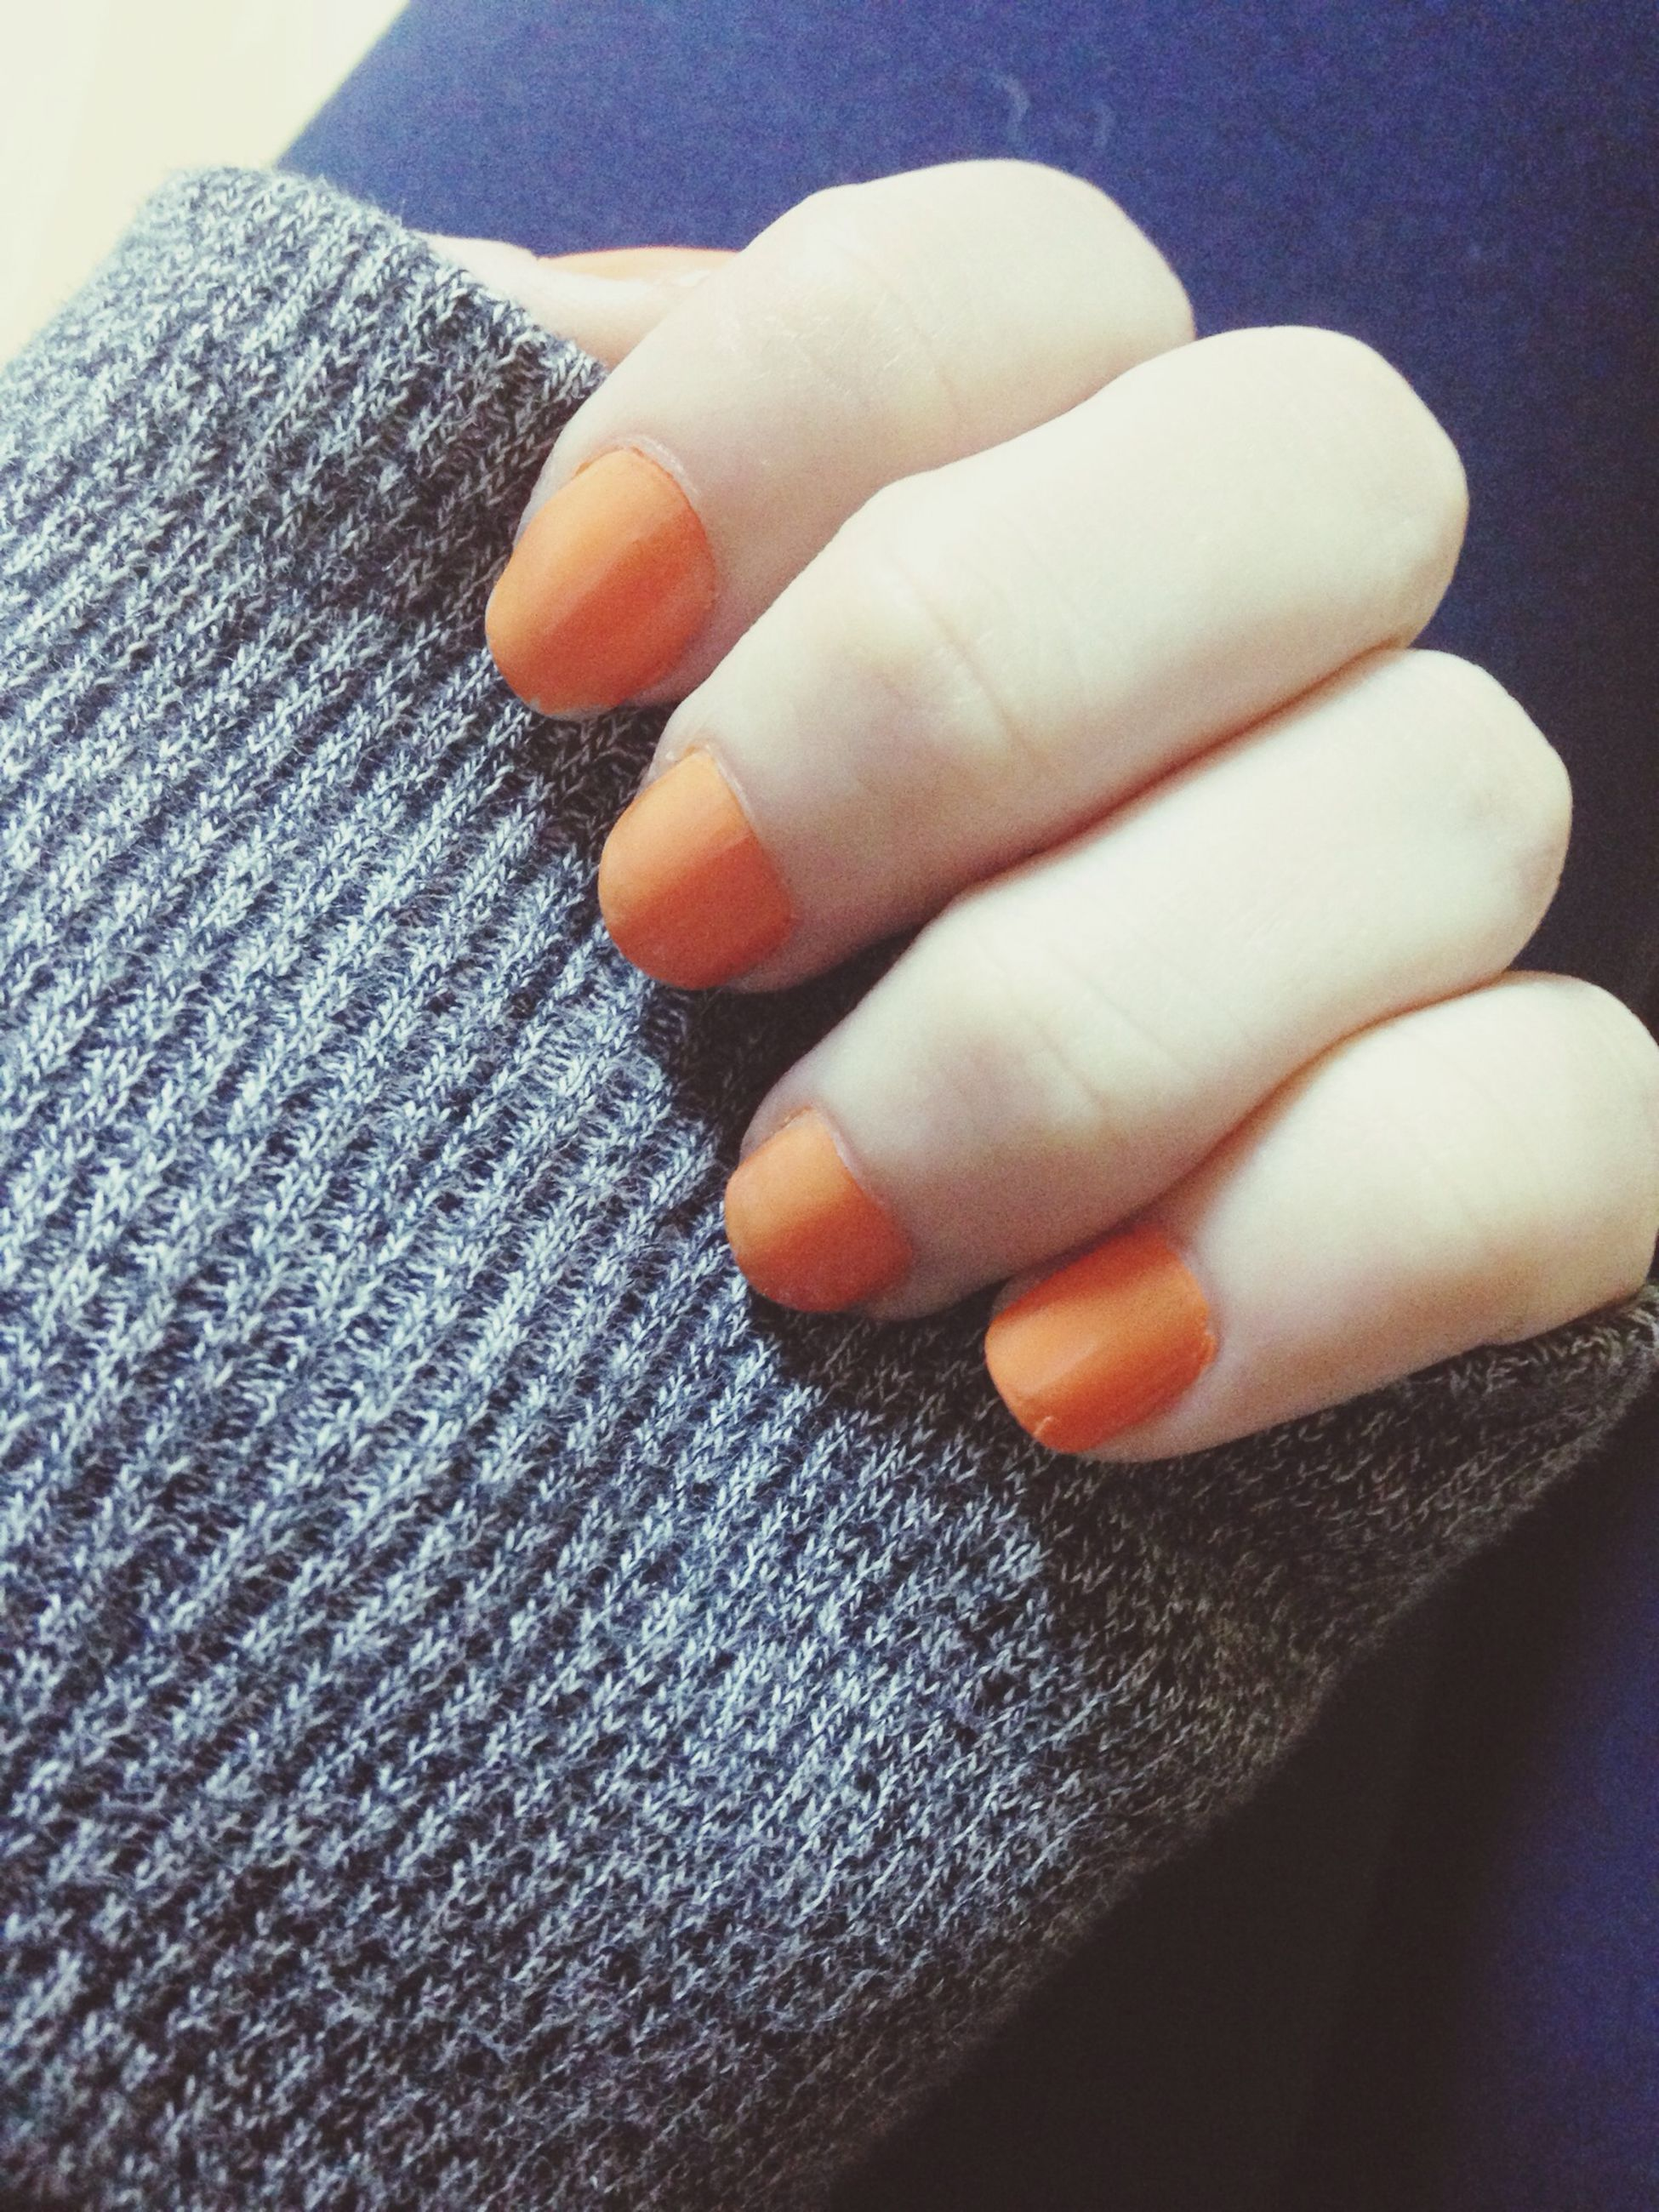 indoors, person, part of, close-up, human finger, textile, cropped, high angle view, fabric, unrecognizable person, bed, lifestyles, holding, low section, human skin